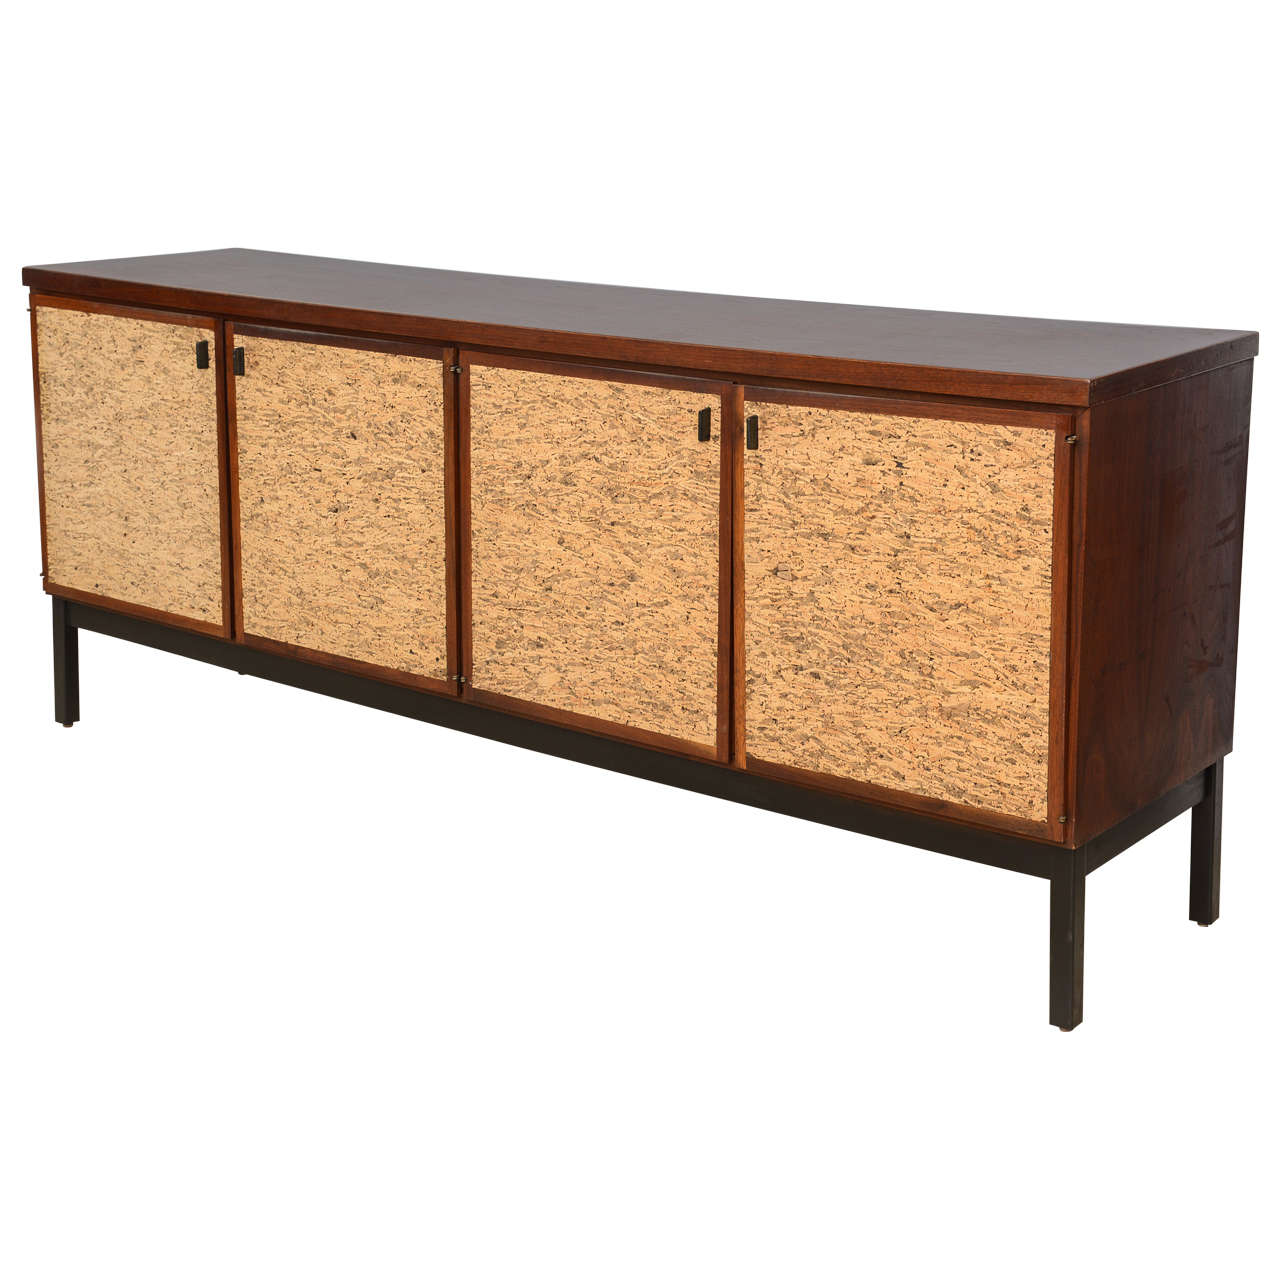 Italian Modern Mahogany And Cork Four Door Credenza Or Buffet